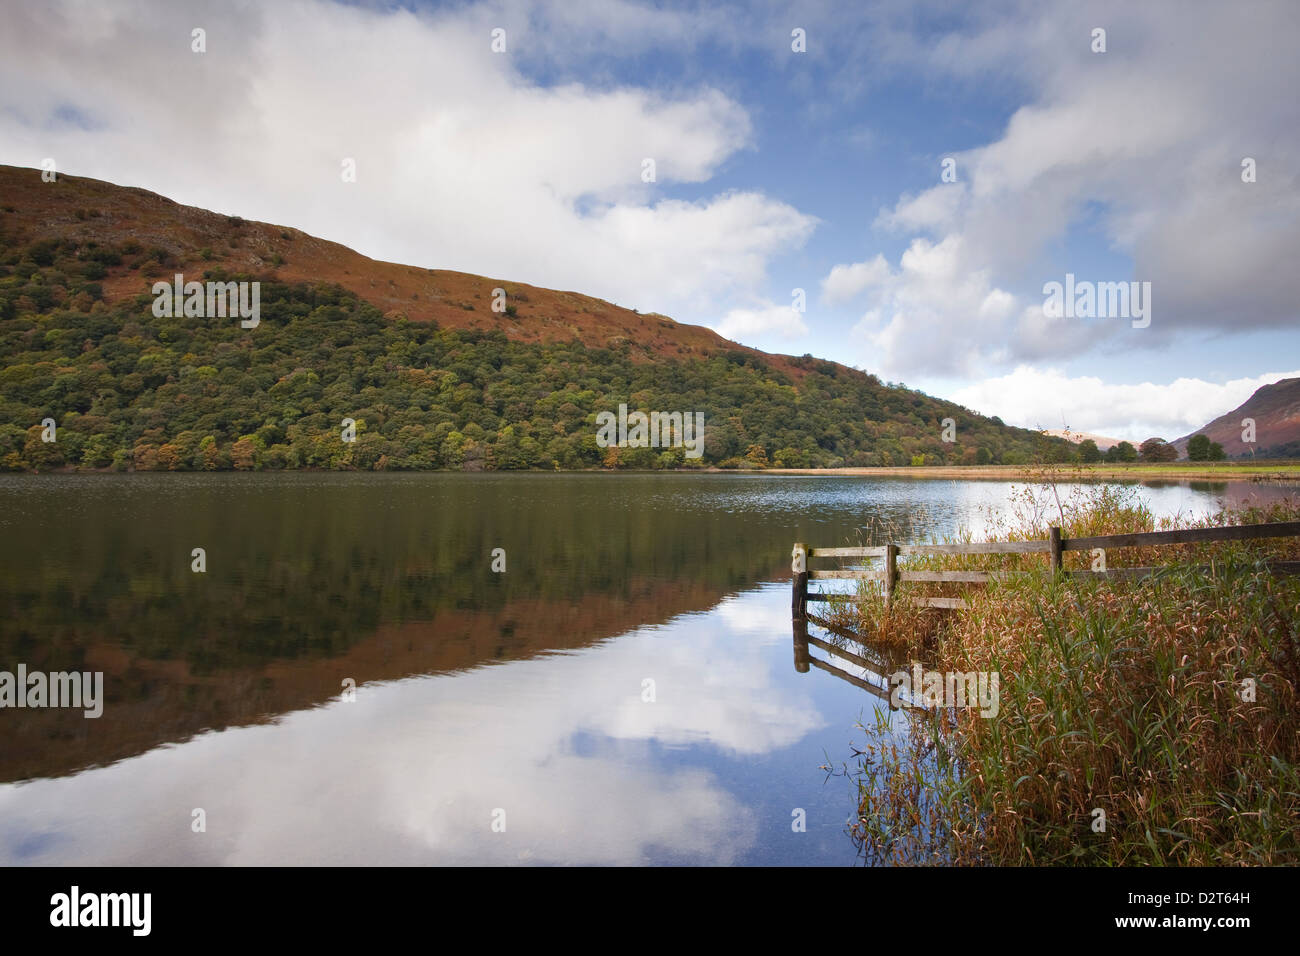 Reflections in the waters of Brothers Water in the Lake District National Park, Cumbria, England, United Kingdom, - Stock Image